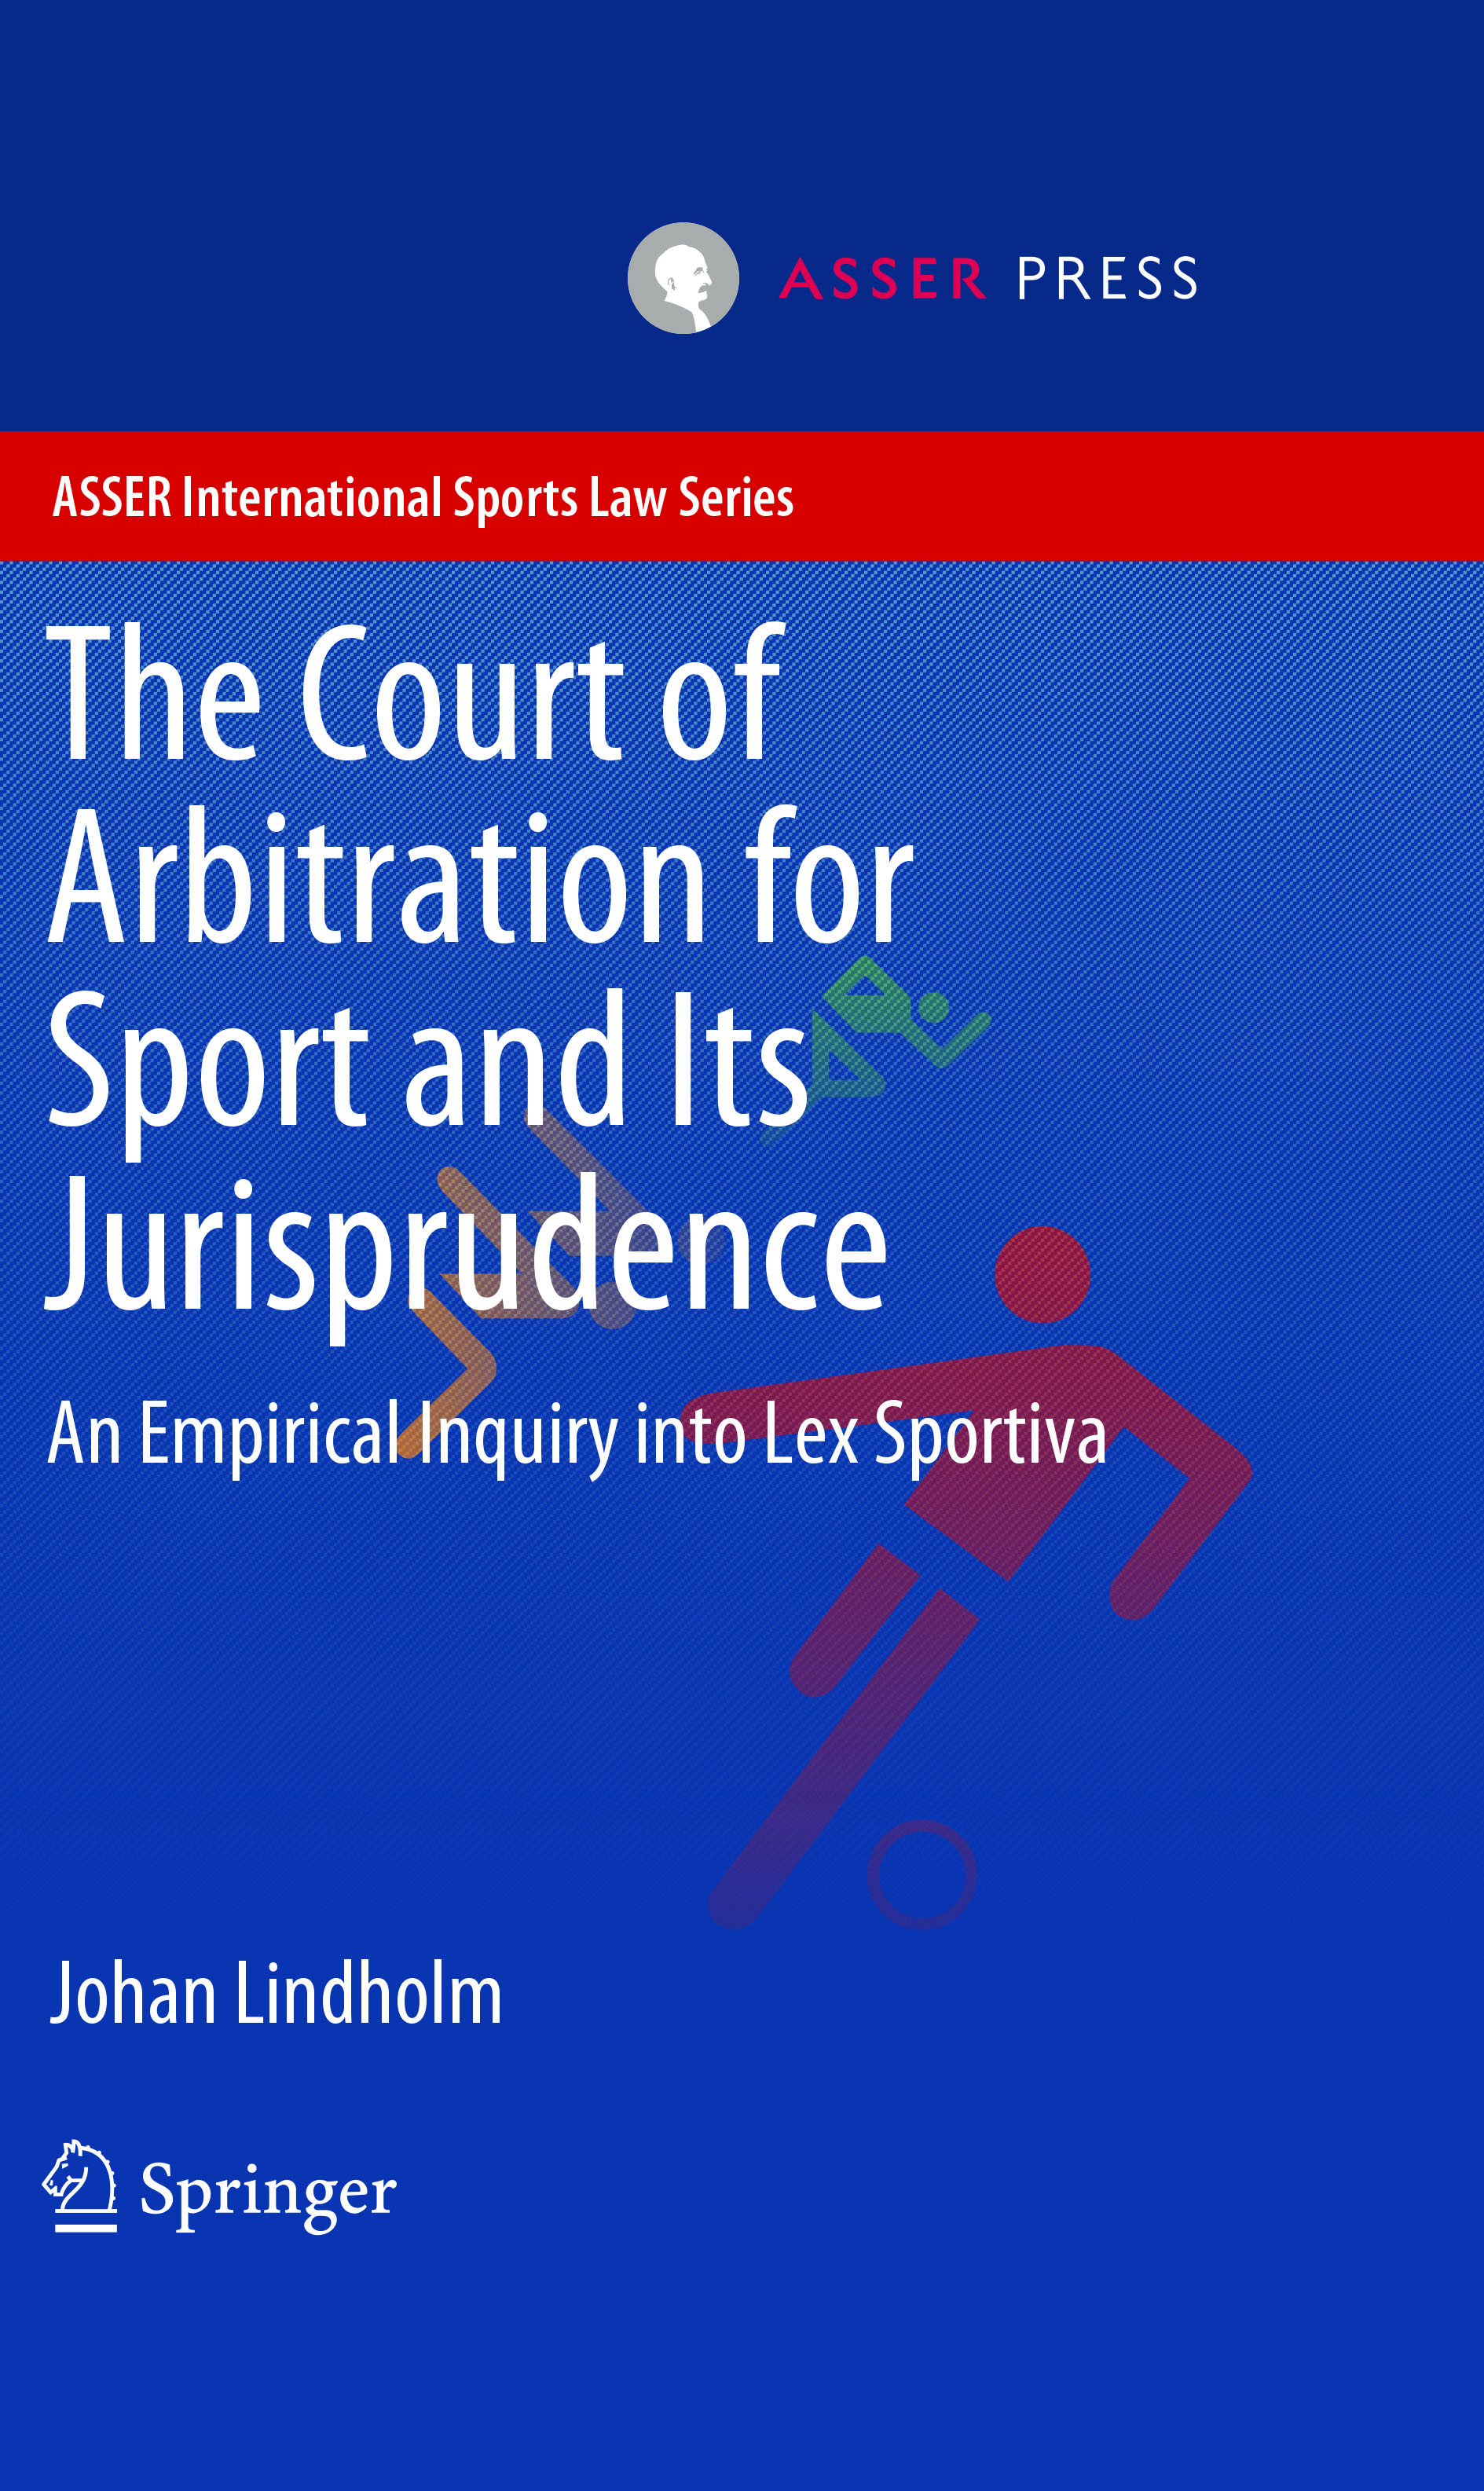 The Court of Arbitration for Sport and Its Jurisprudence - An Empirical Inquiry into Lex Sportiva